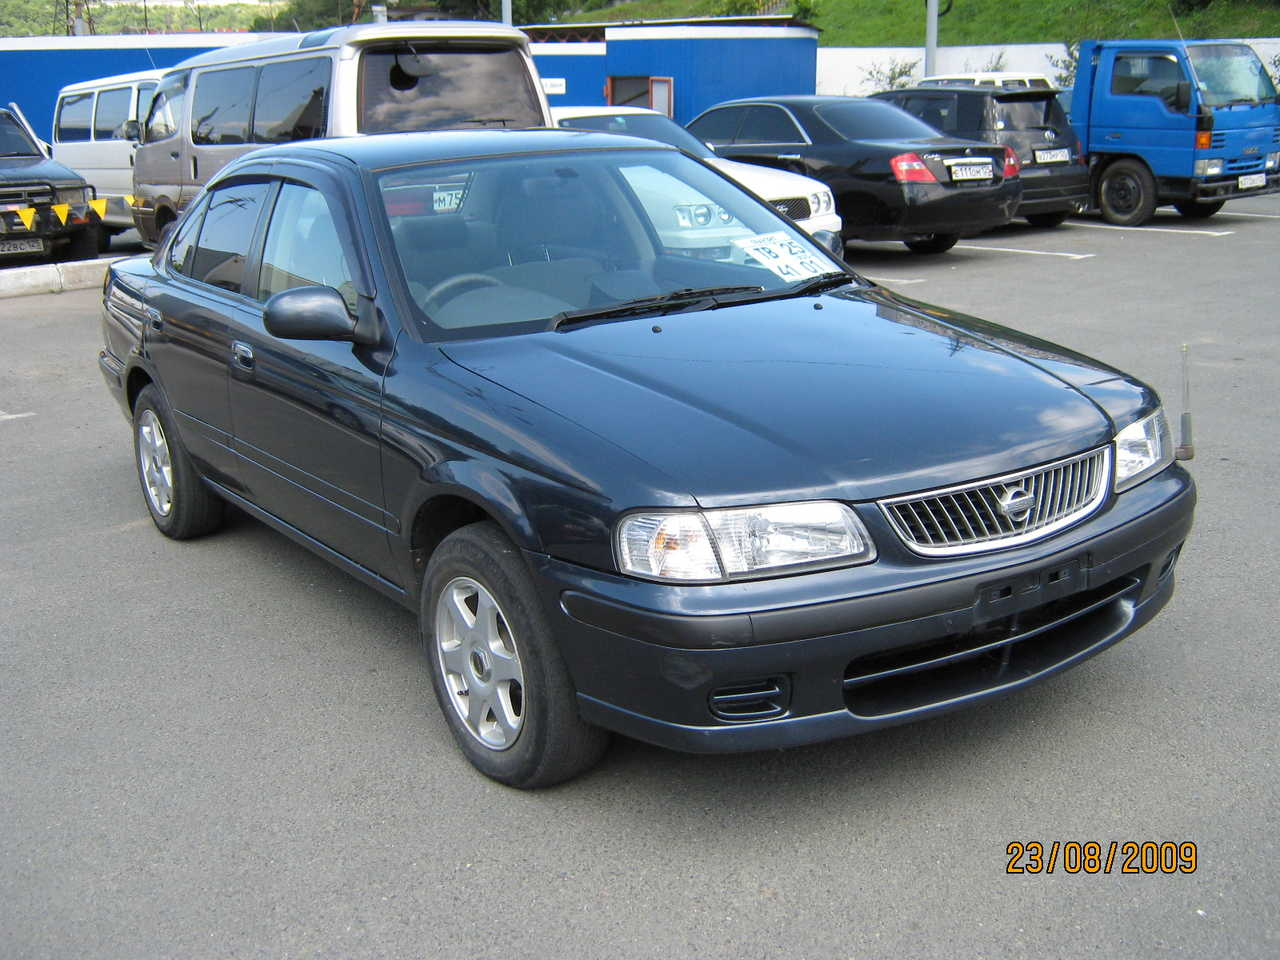 1999 Nissan Sunny Photos, 1.8, Gasoline, FF, Automatic For ...